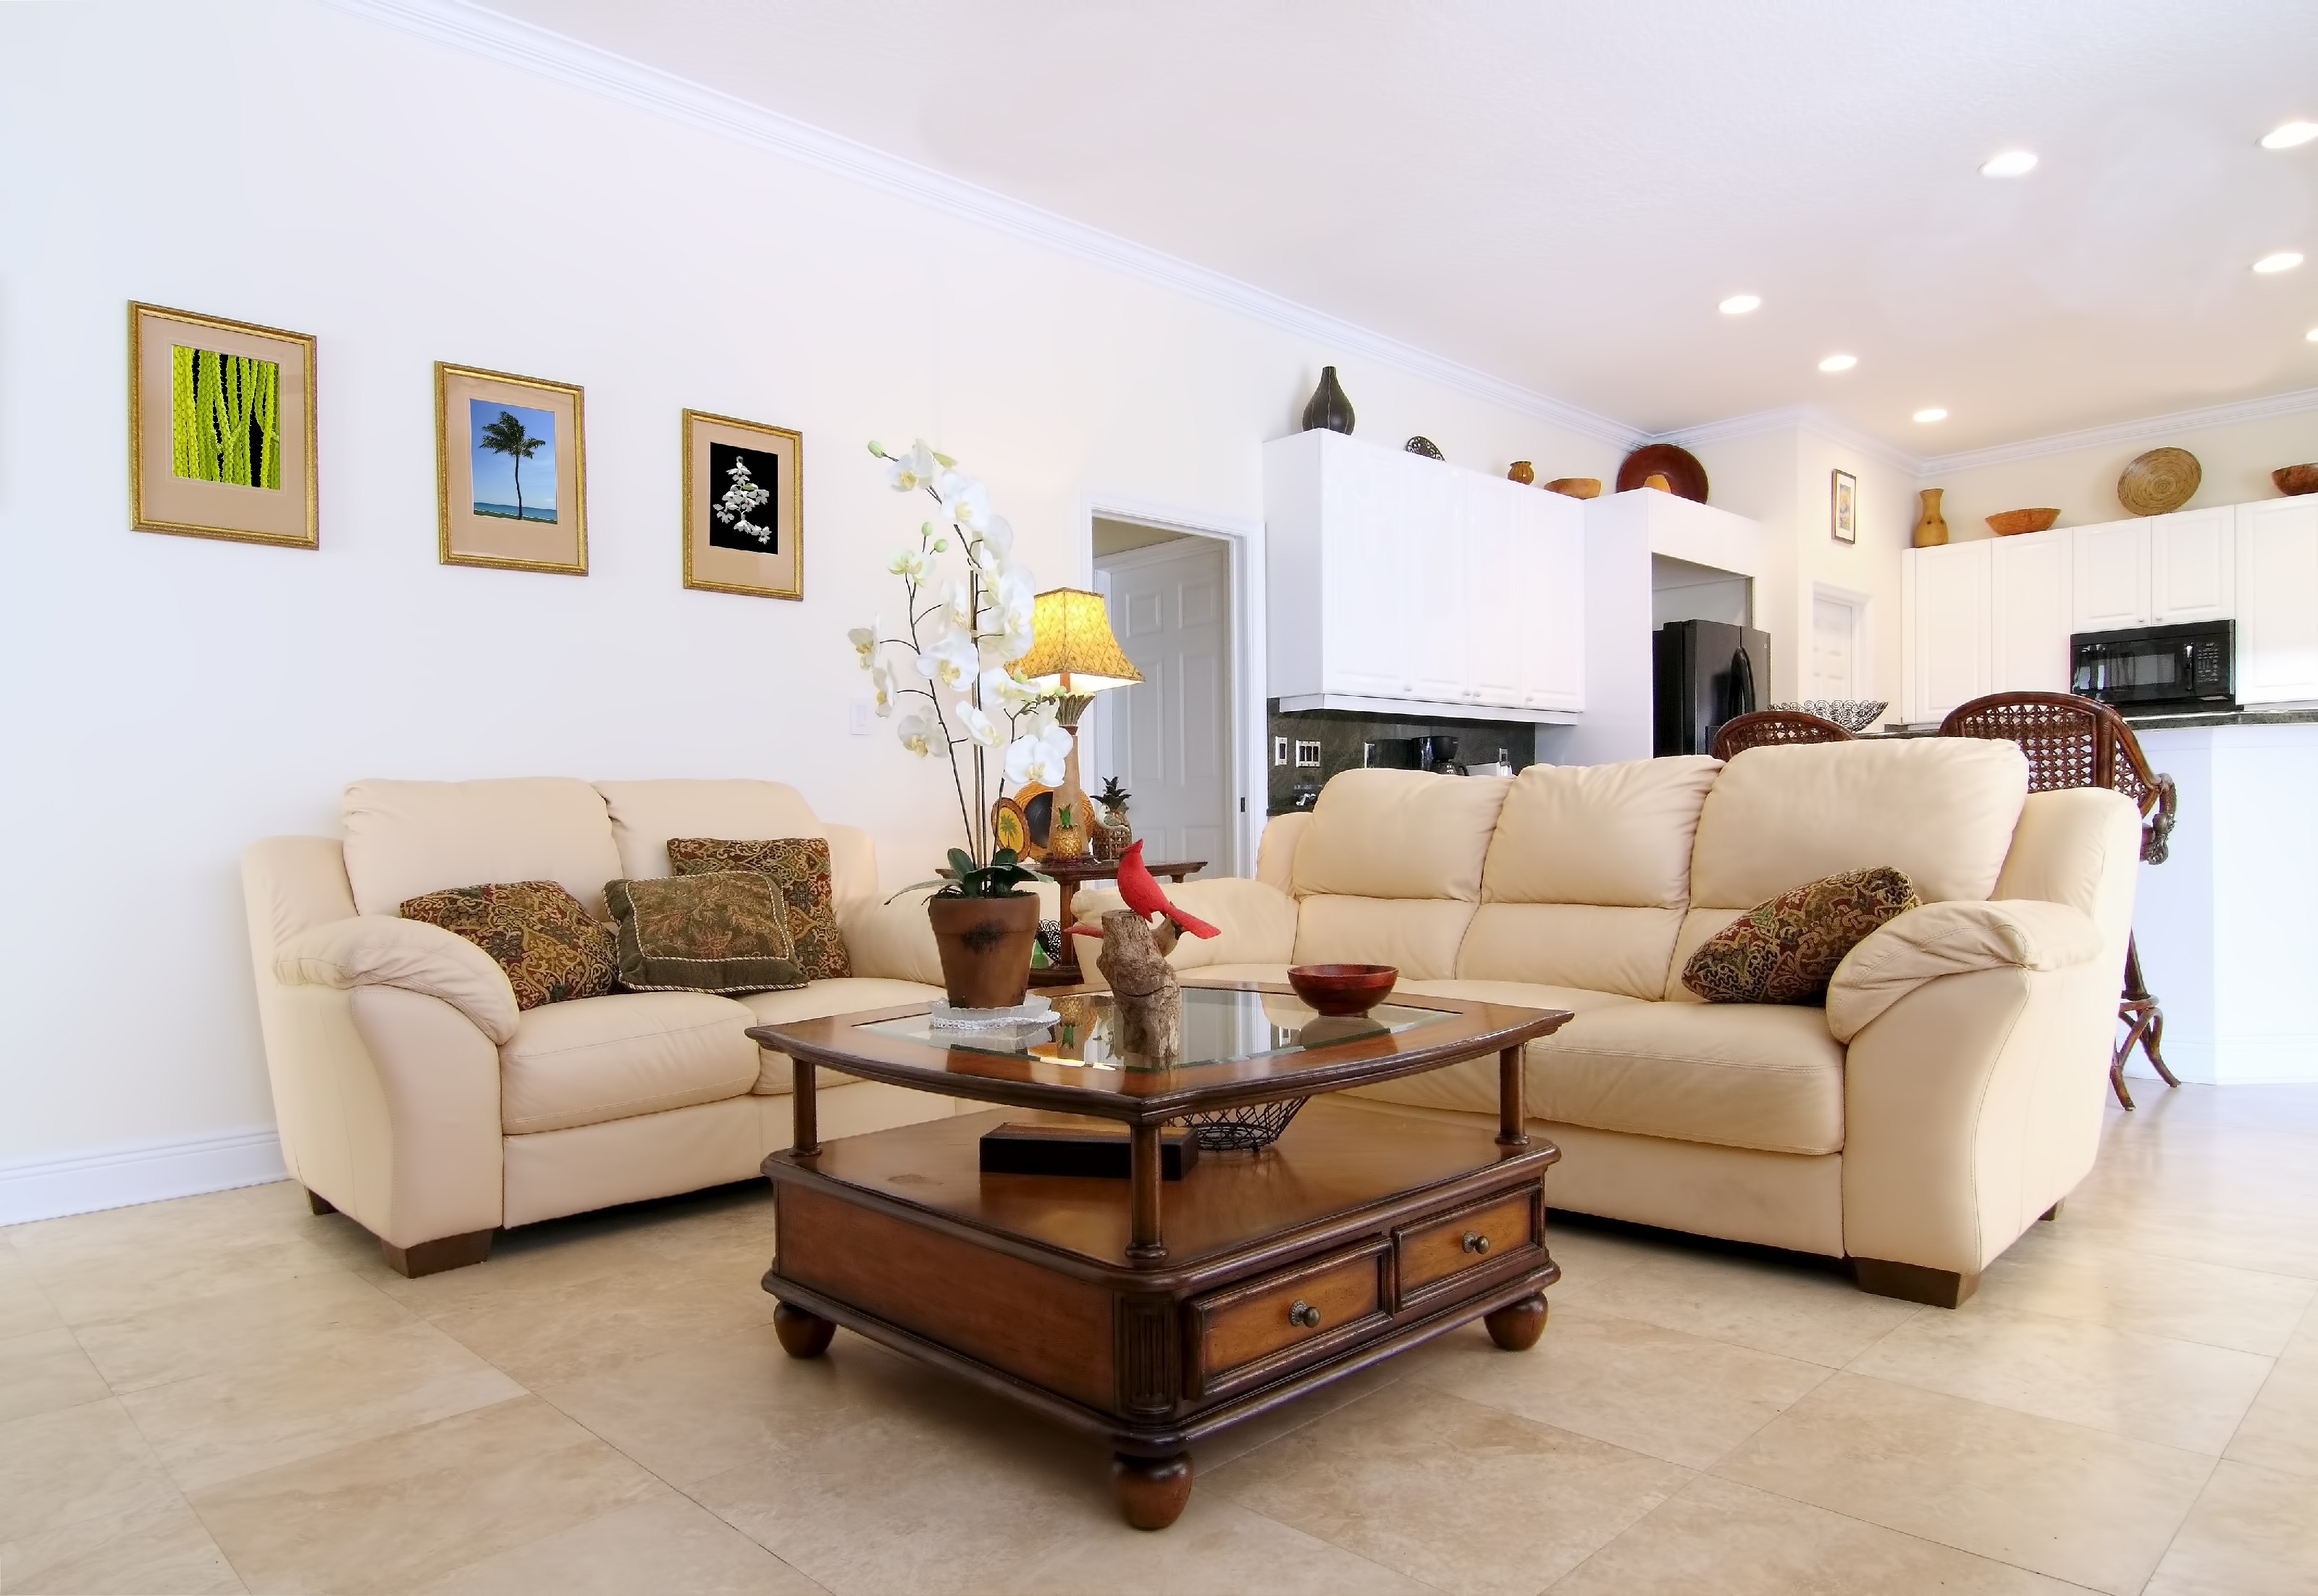 Overview of a beautiful classic family room in a private residence